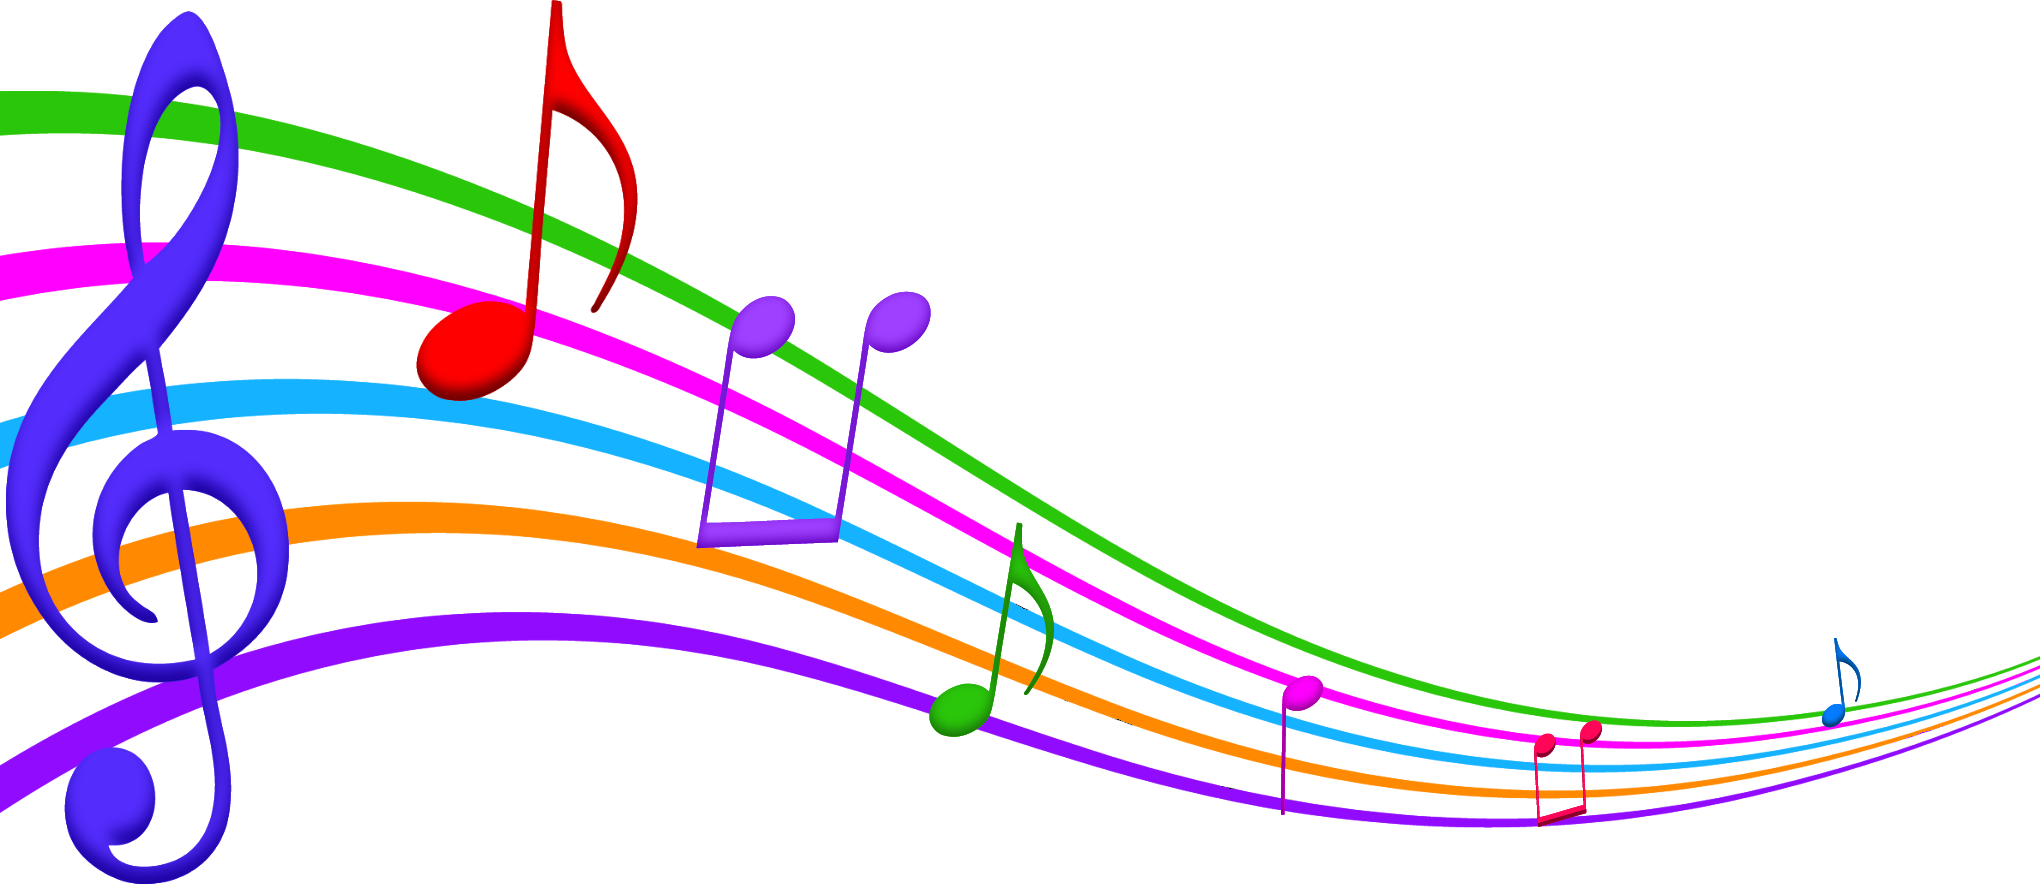 Music Notes Clip Art Png   Clipart Panda - Free Clipart Images ...